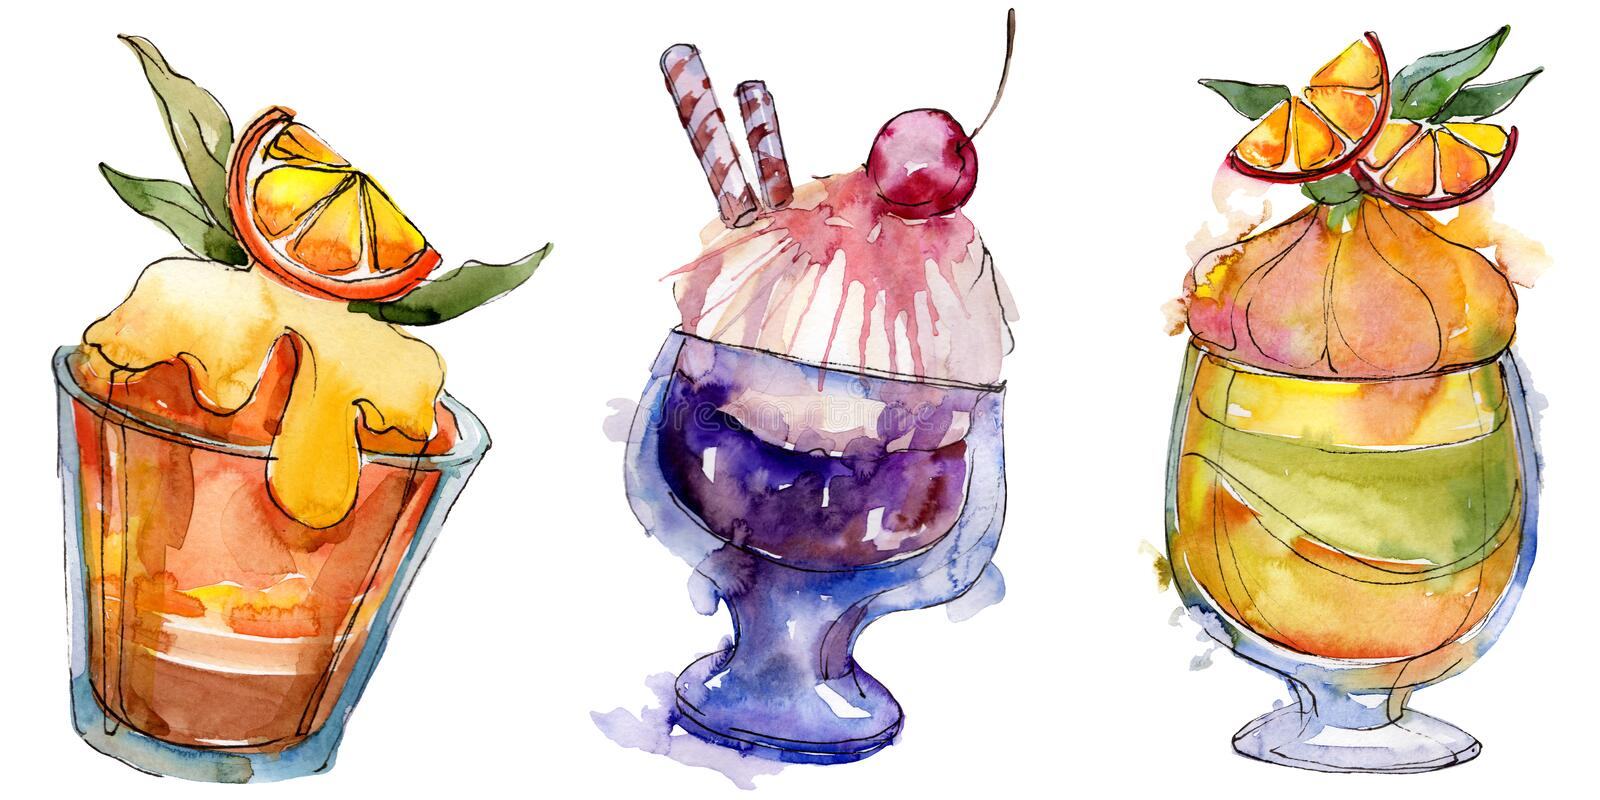 Tasty ice cream in a watercolor style. Aquarelle sweet dessert illustration set. Isolated desserts background element. Tasty ice cream in a watercolor style vector illustration